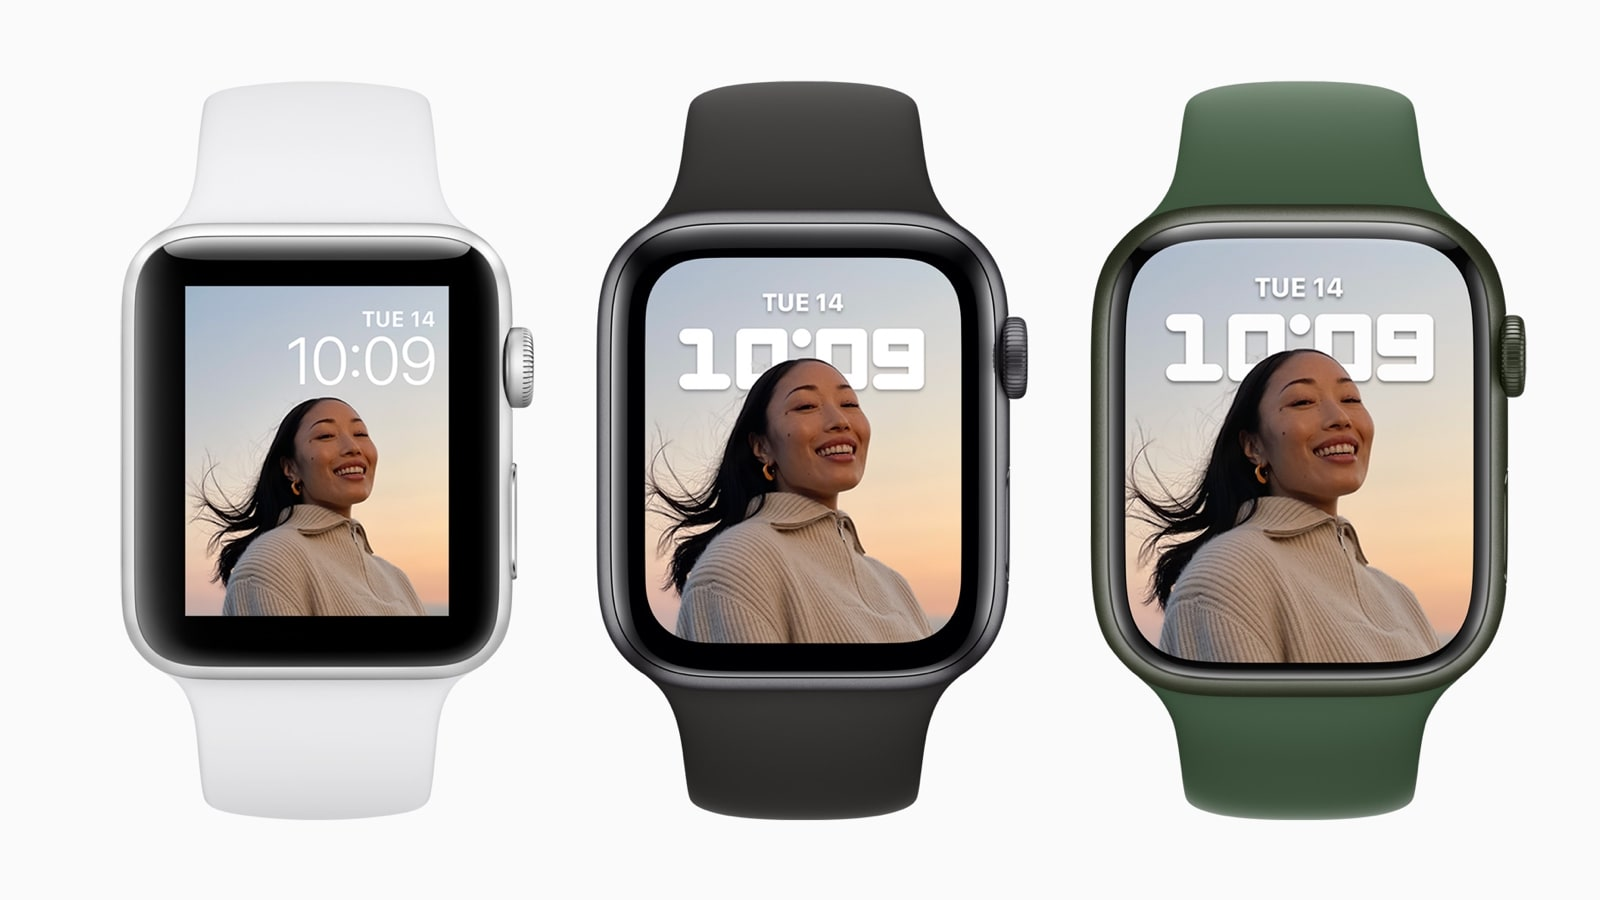 When will Apple Watch Series 7 be available to purchase?